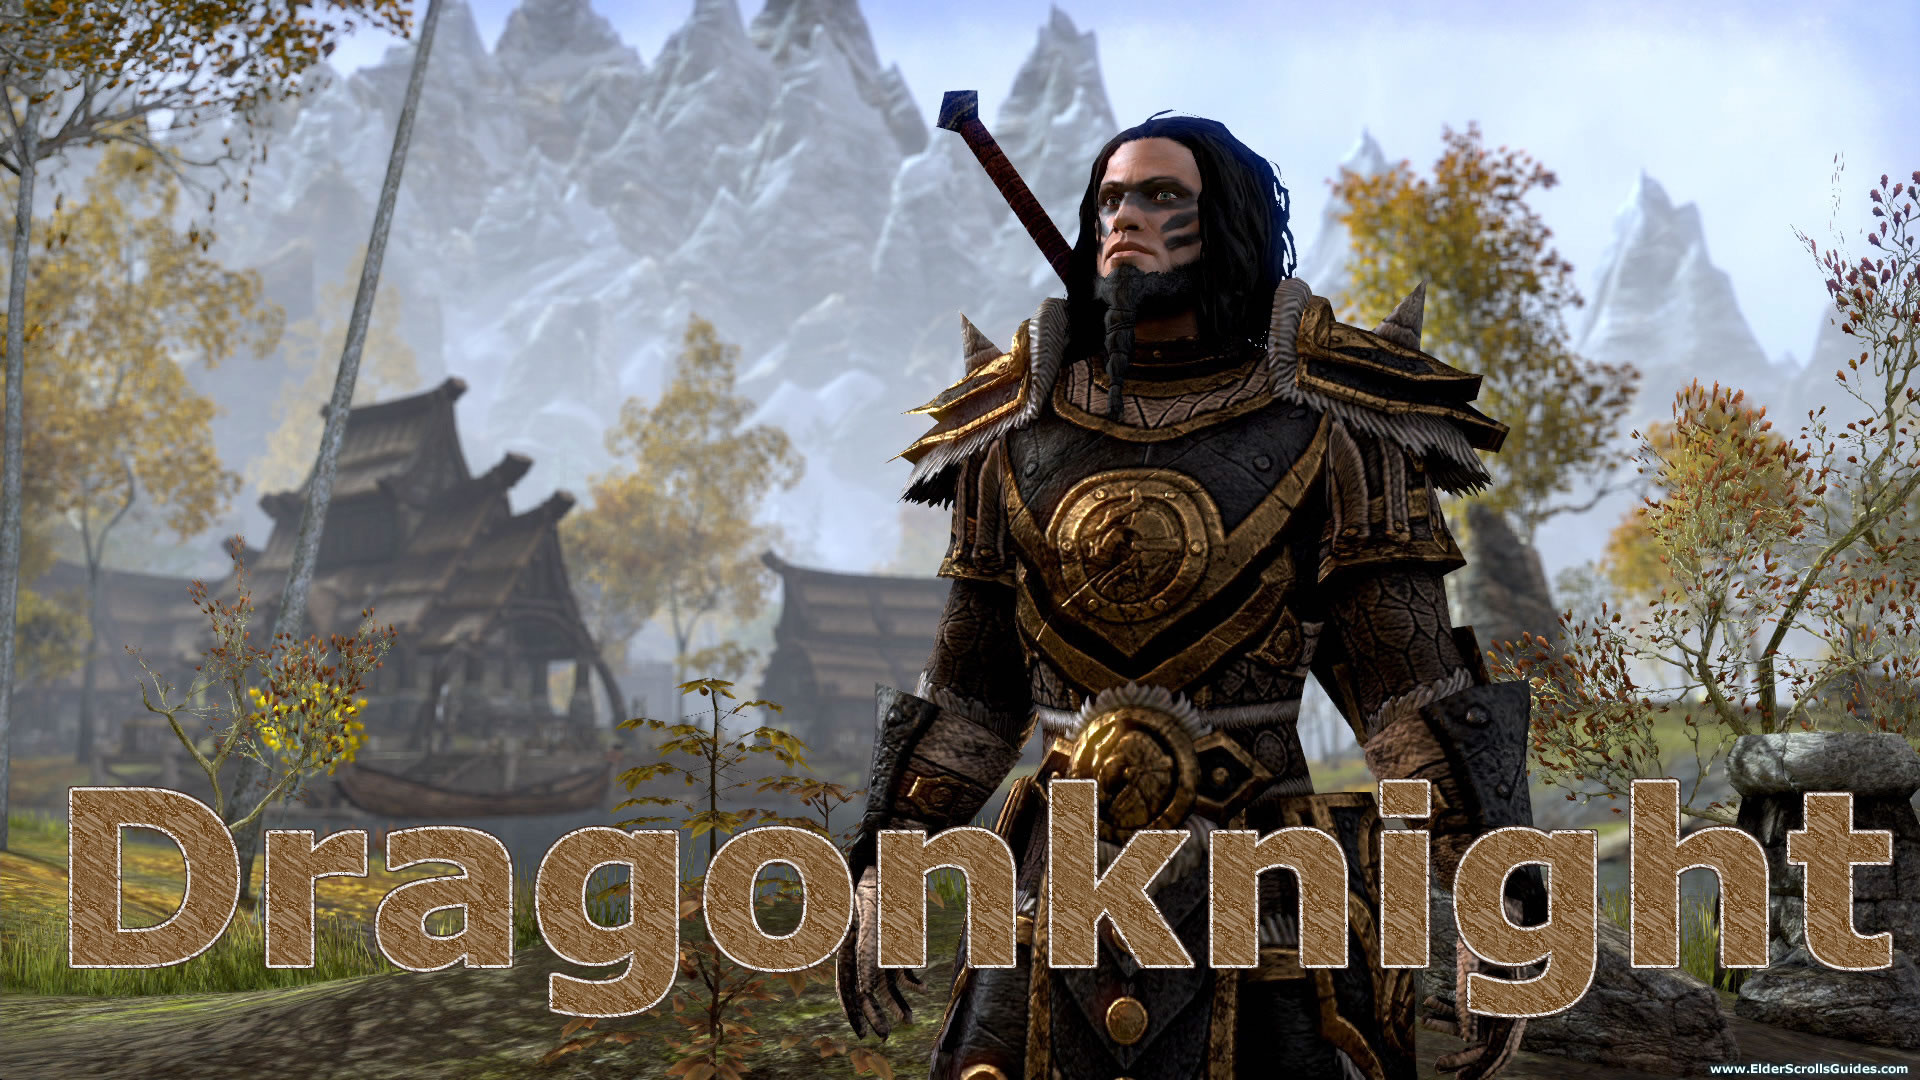 Dragon Knight Armor Skyrim / The armor set was originally included in dragon knight armor mod.